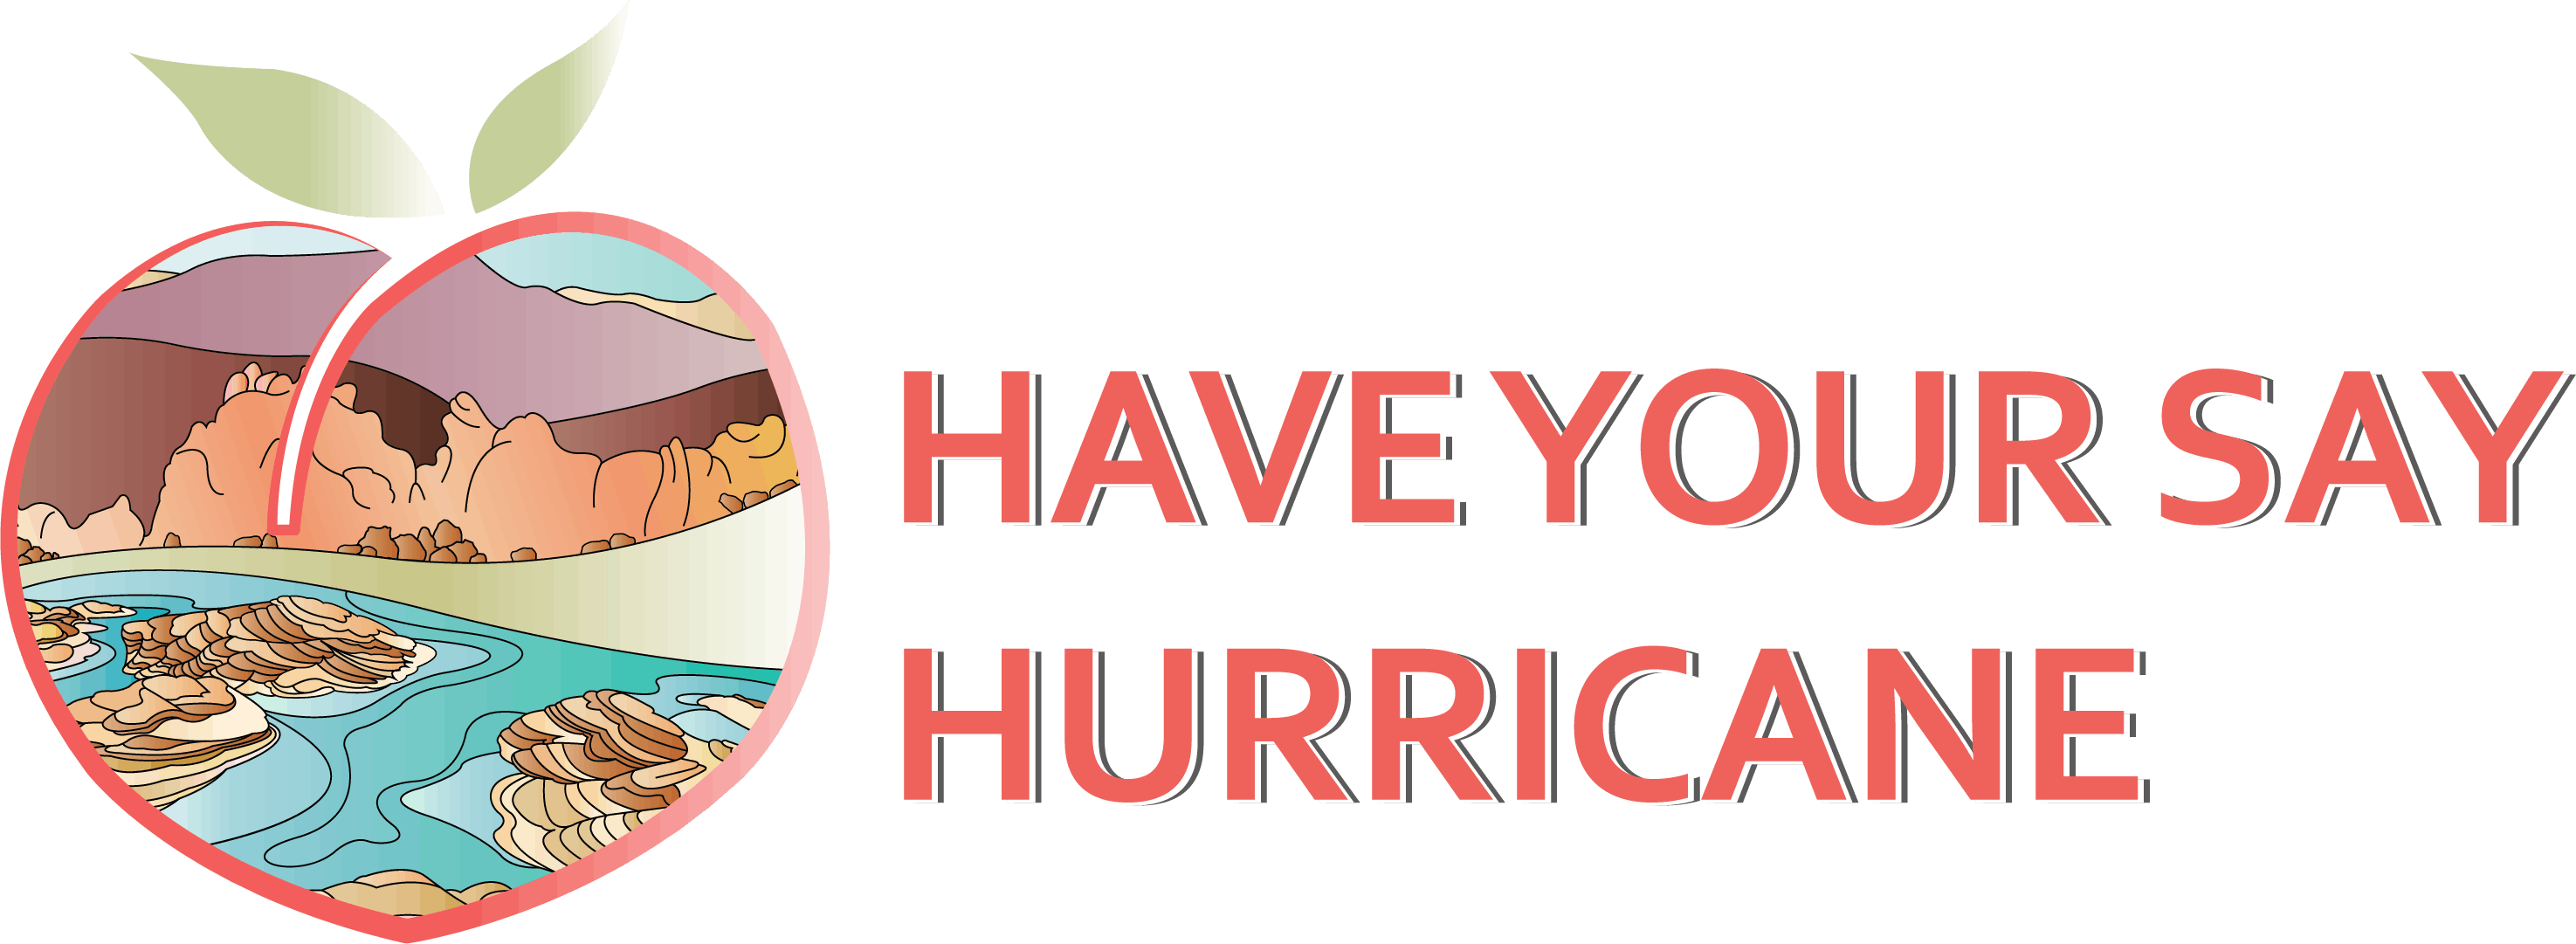 Have Your Say Hurricane